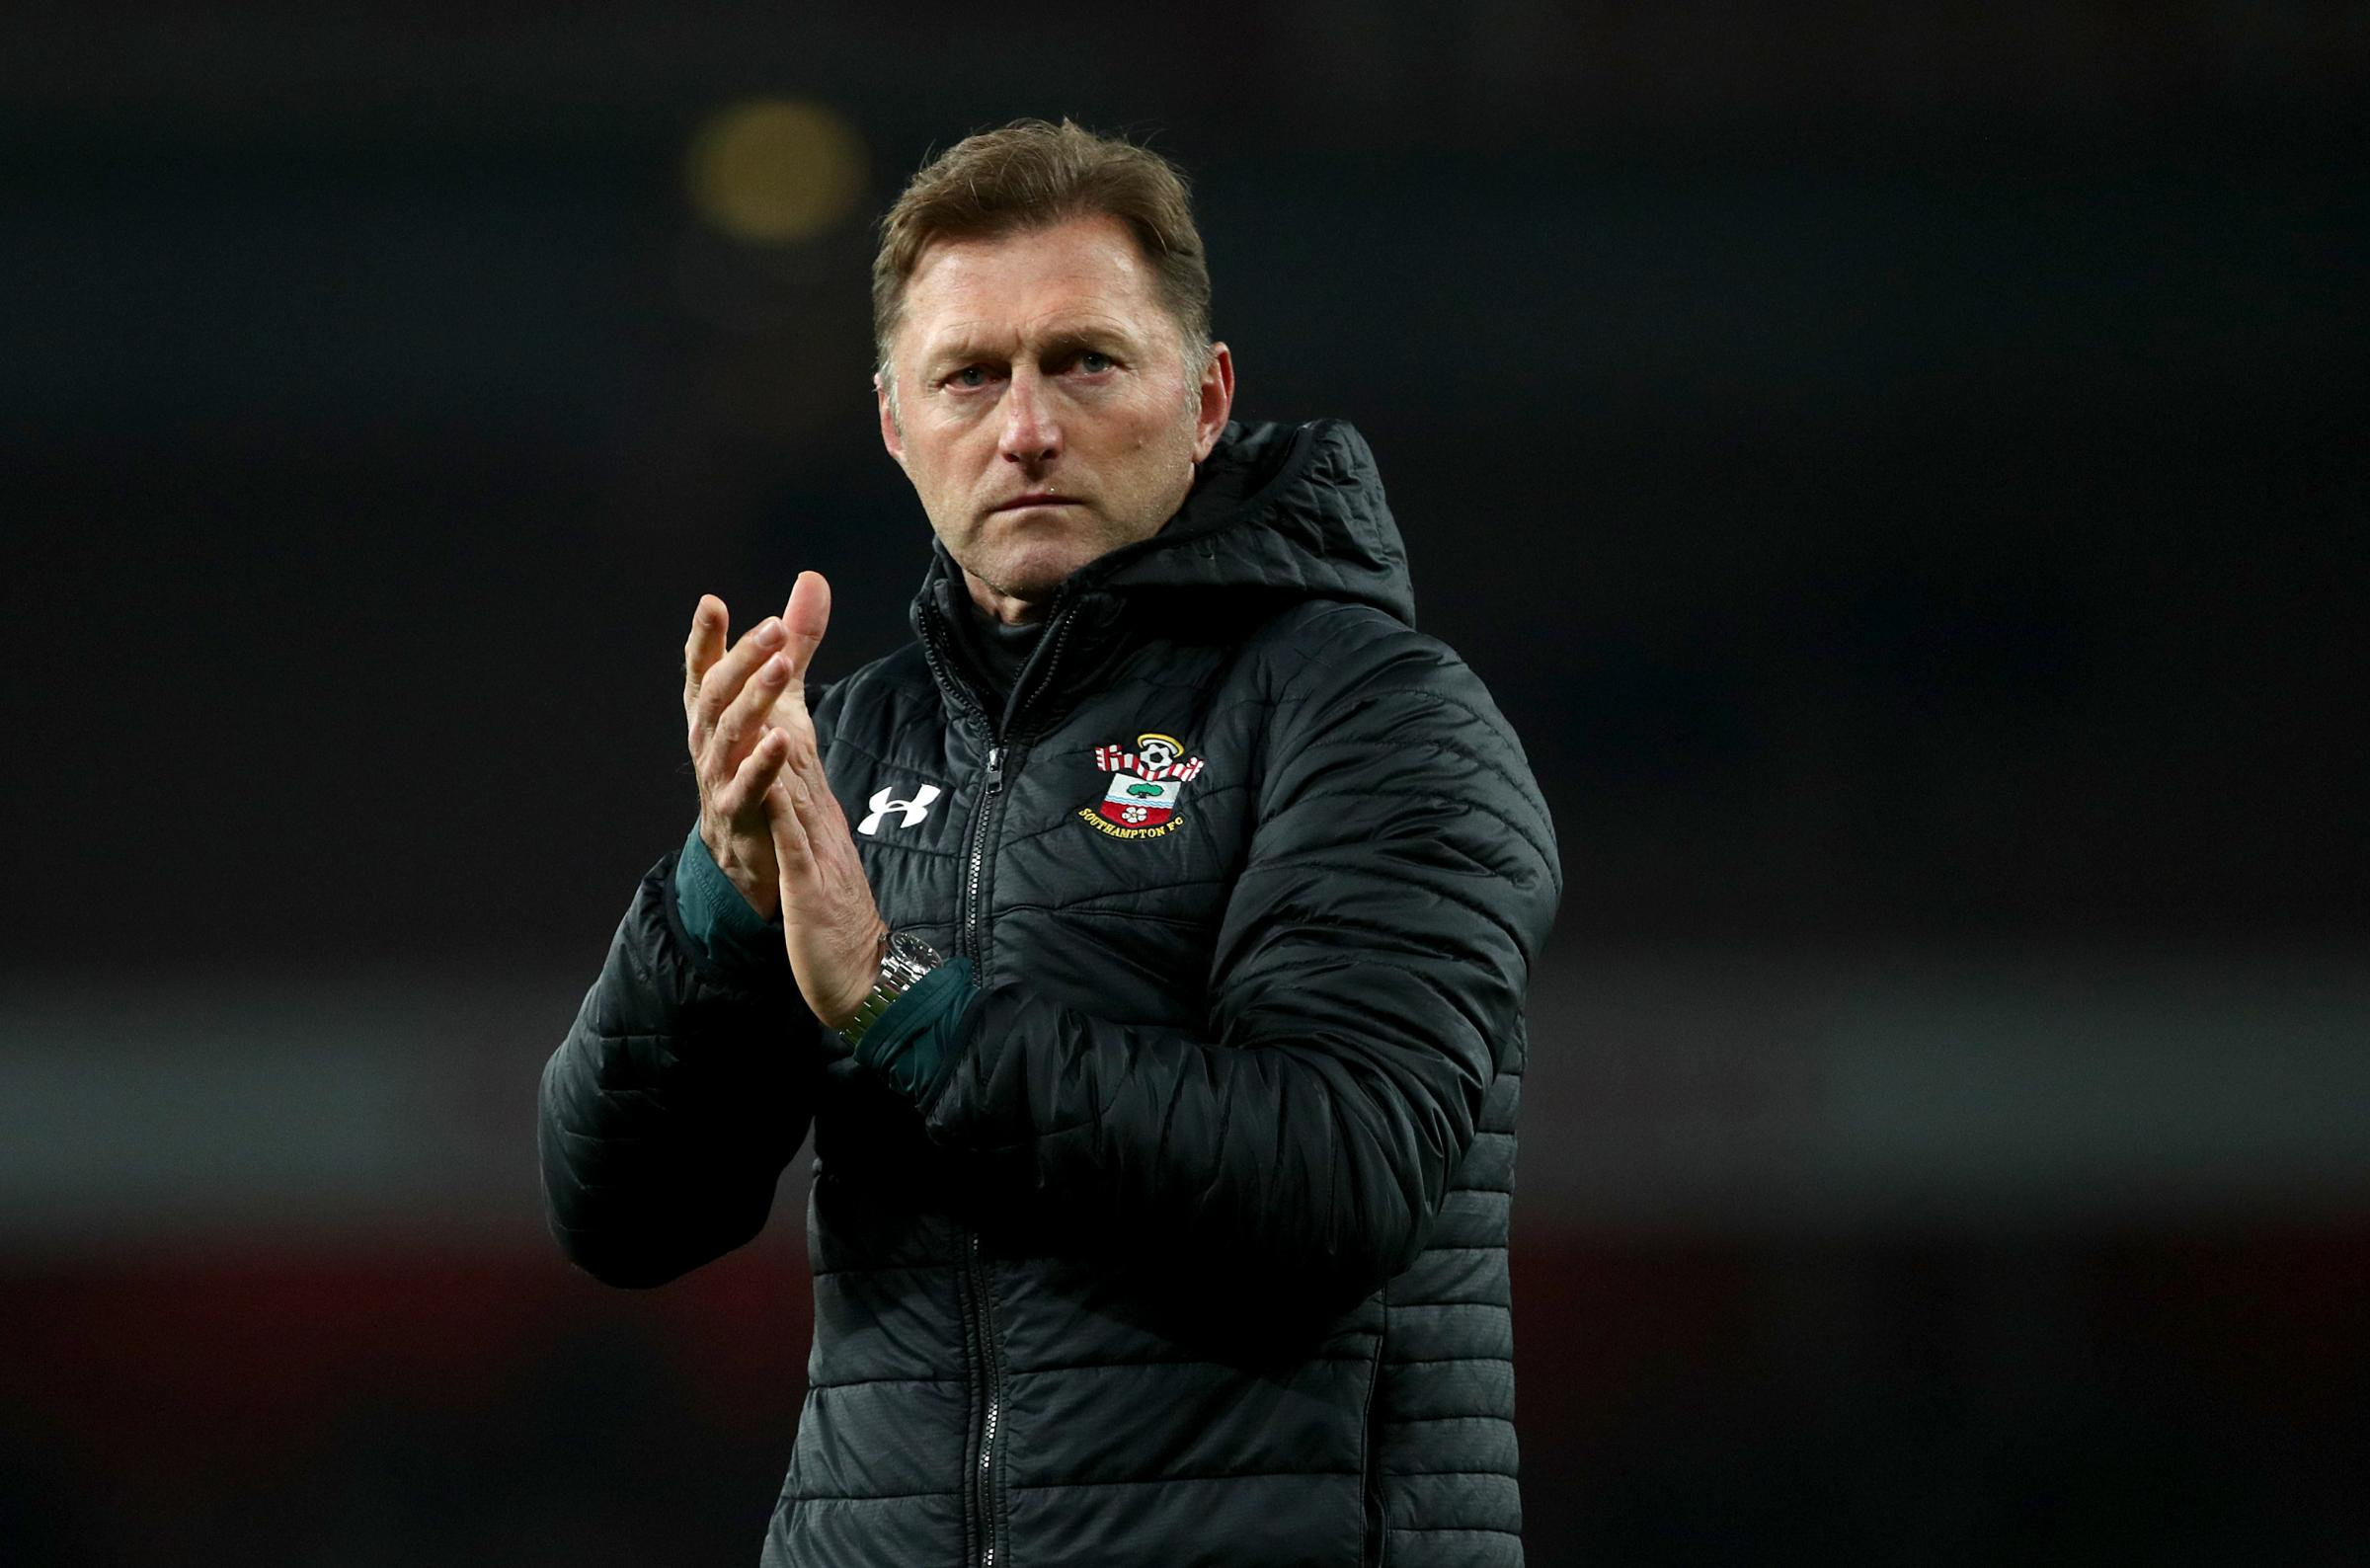 A look at Southampton boss Ralph Hasenhuttl's first year in charge